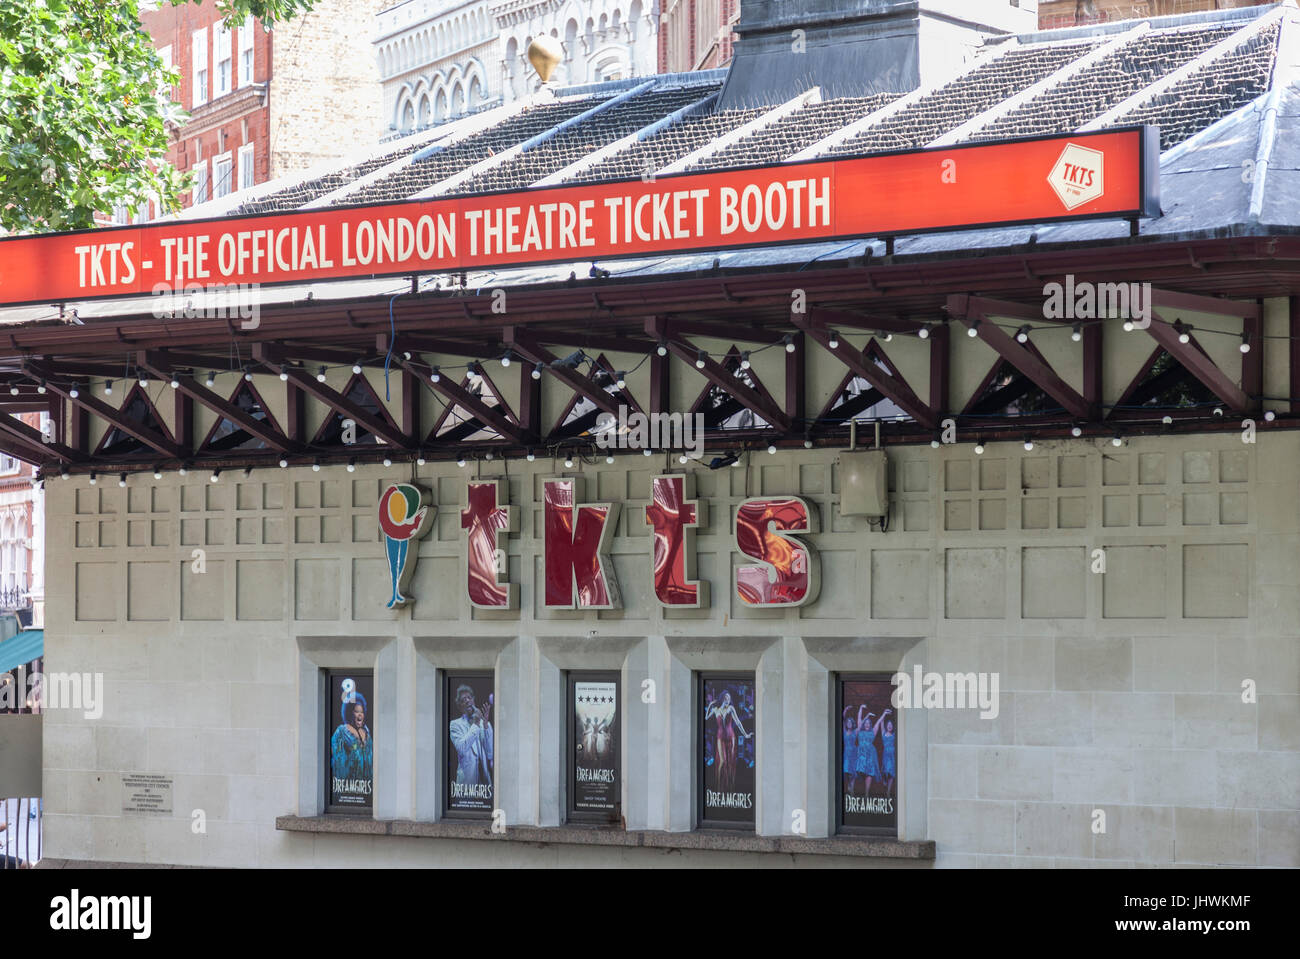 Side of 'Tkts - the Official London Theatre Ticket Booth' in Leicester Square in central London, England, - Stock Image